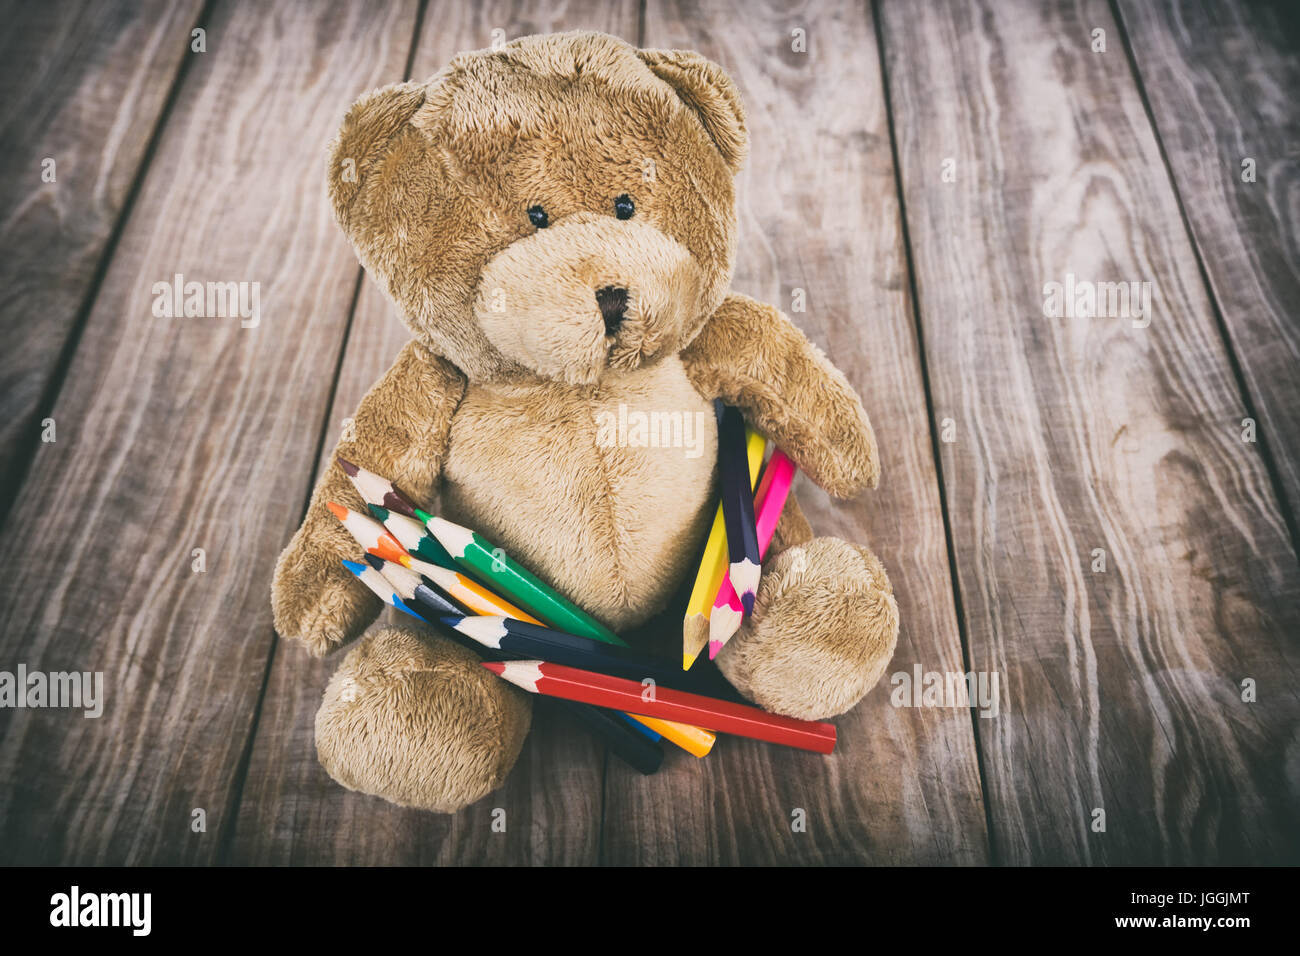 Colored Teddy Bear Stockfotos & Colored Teddy Bear Bilder - Alamy